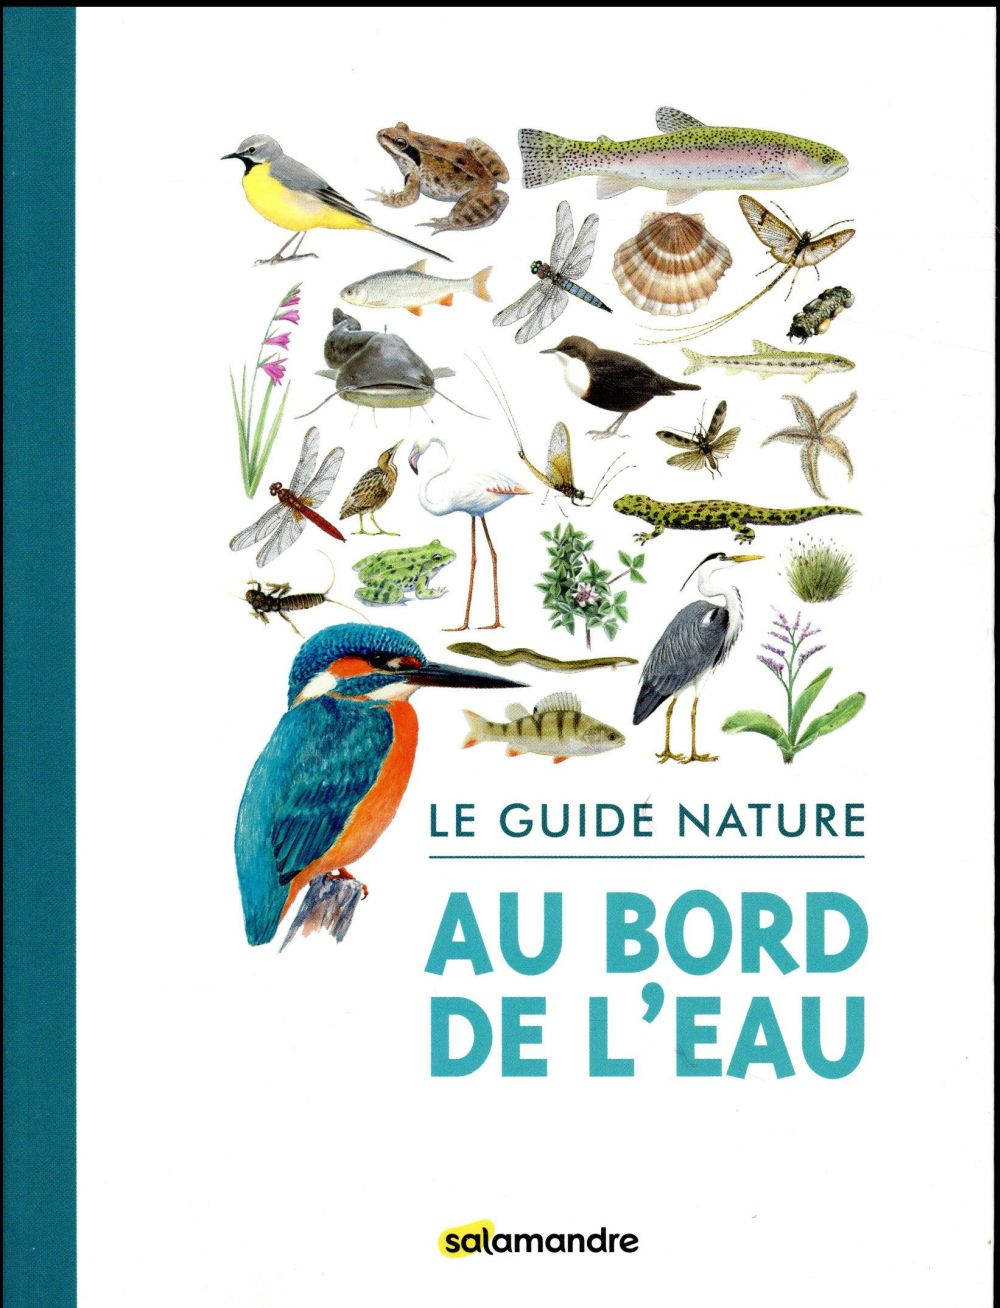 Le guide nature au bord de l'eau